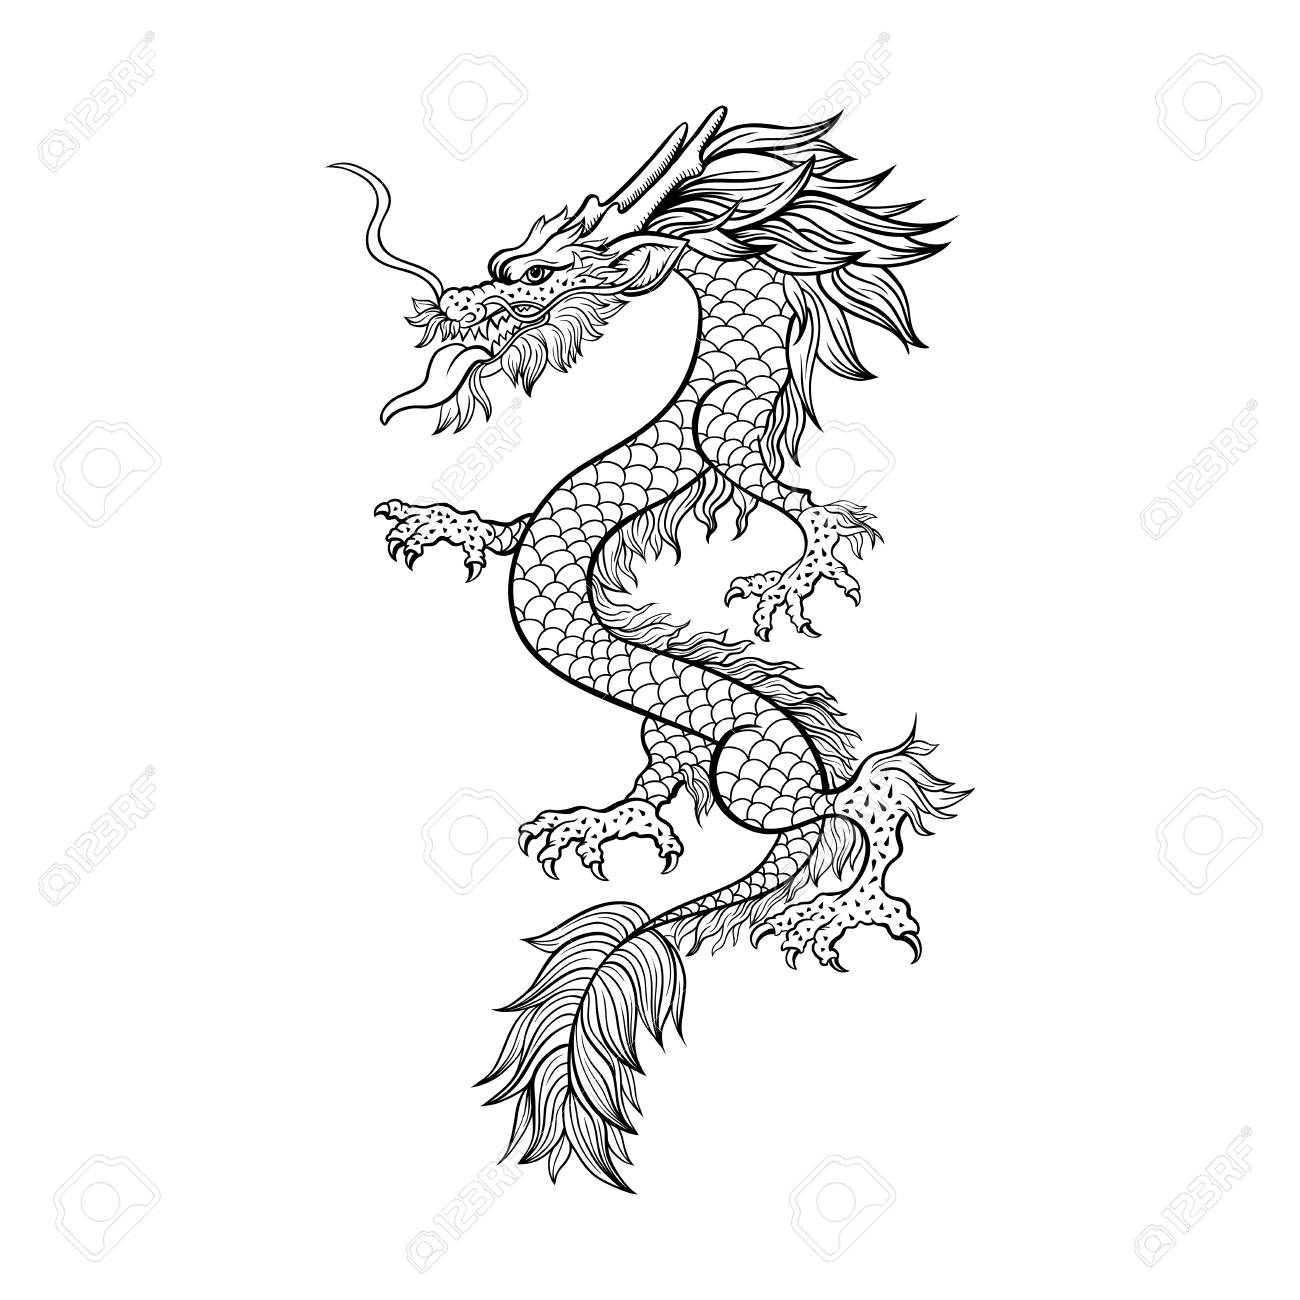 Chinese dragon hand drawn vector illustration mythical creature